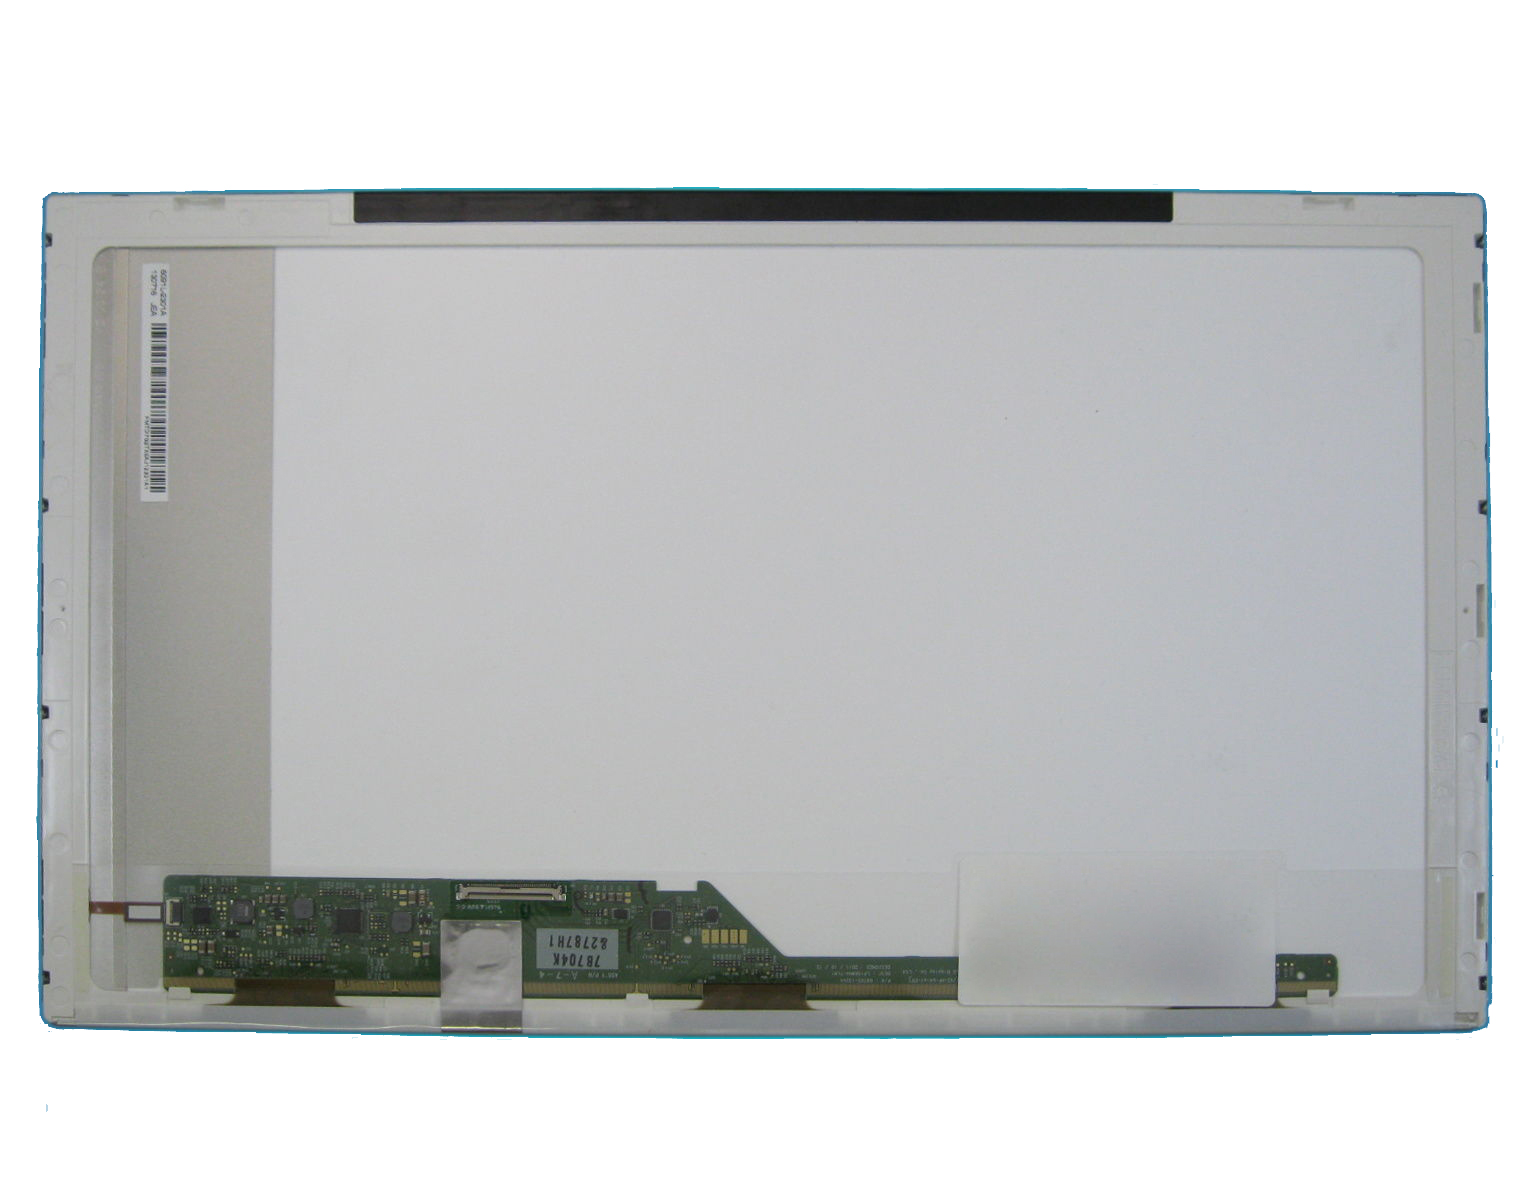 Фотография TTLCD Laptop LCD Screen 15.6 inch for HP-Compaq HP G62-A33SZ perfect screen without dead piexls